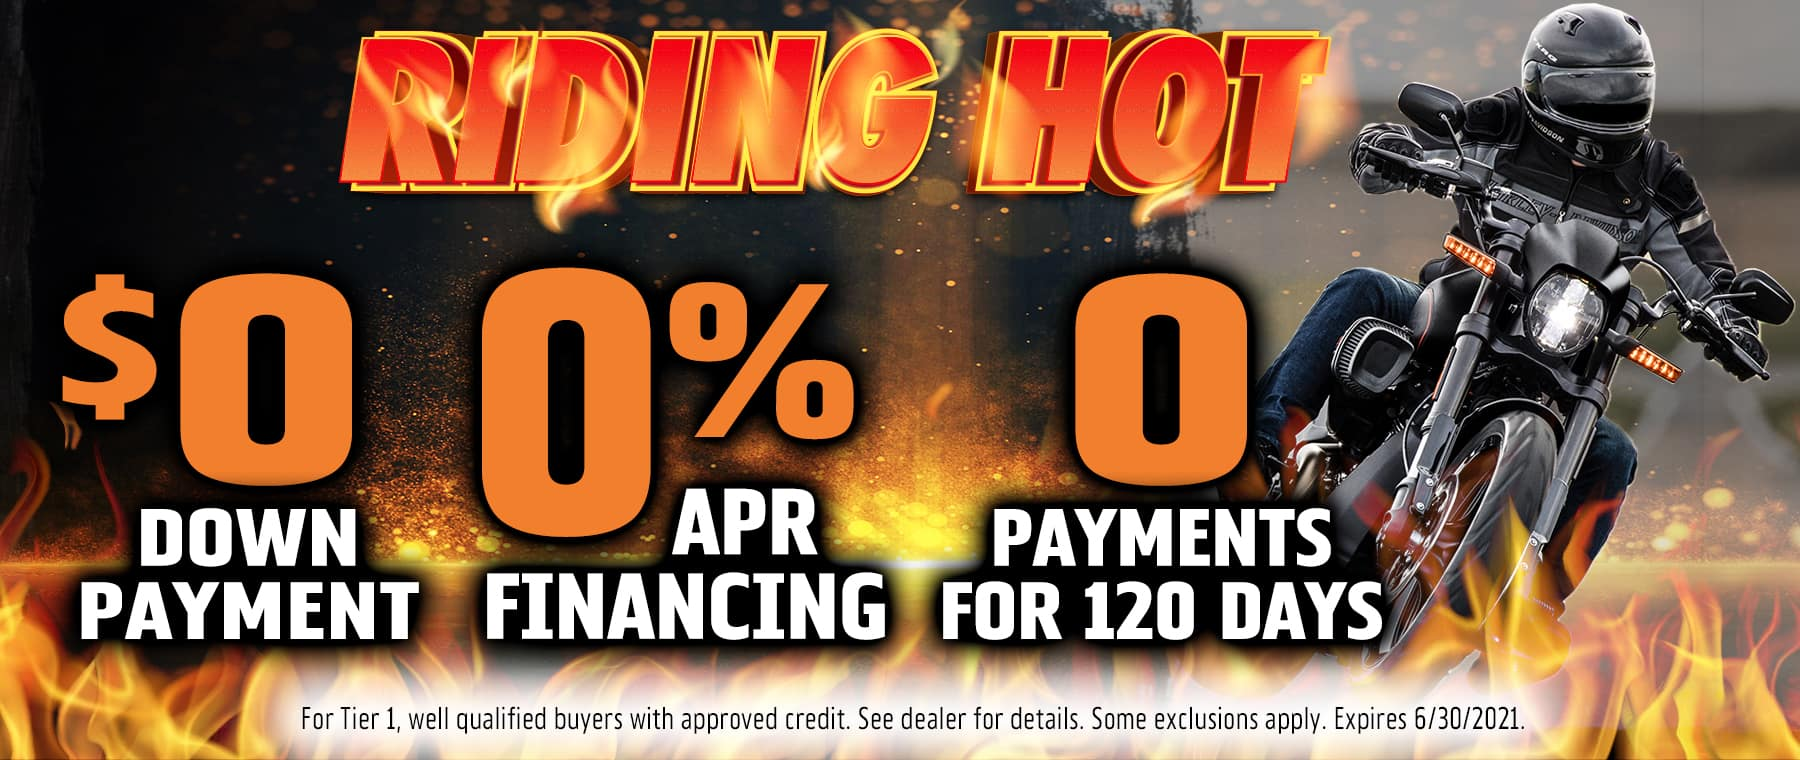 $0 DOWN PAYMENT | 0% APR | 0 PAYMENTS FOR 120 DAYS